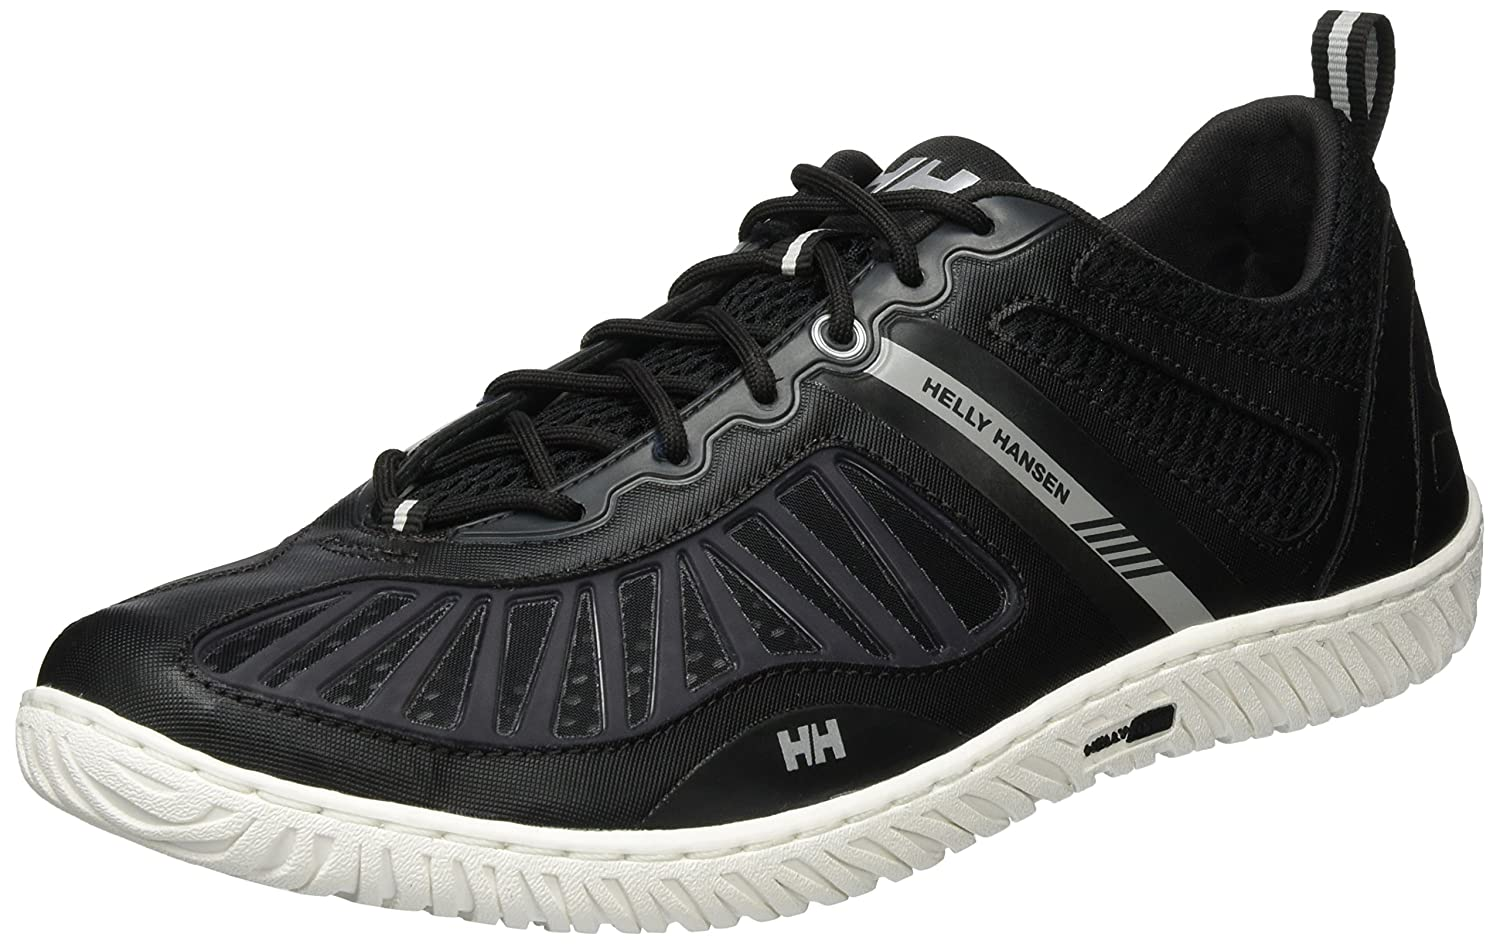 Helly Hansen Men's's Hydropower 4 Boating Shoes